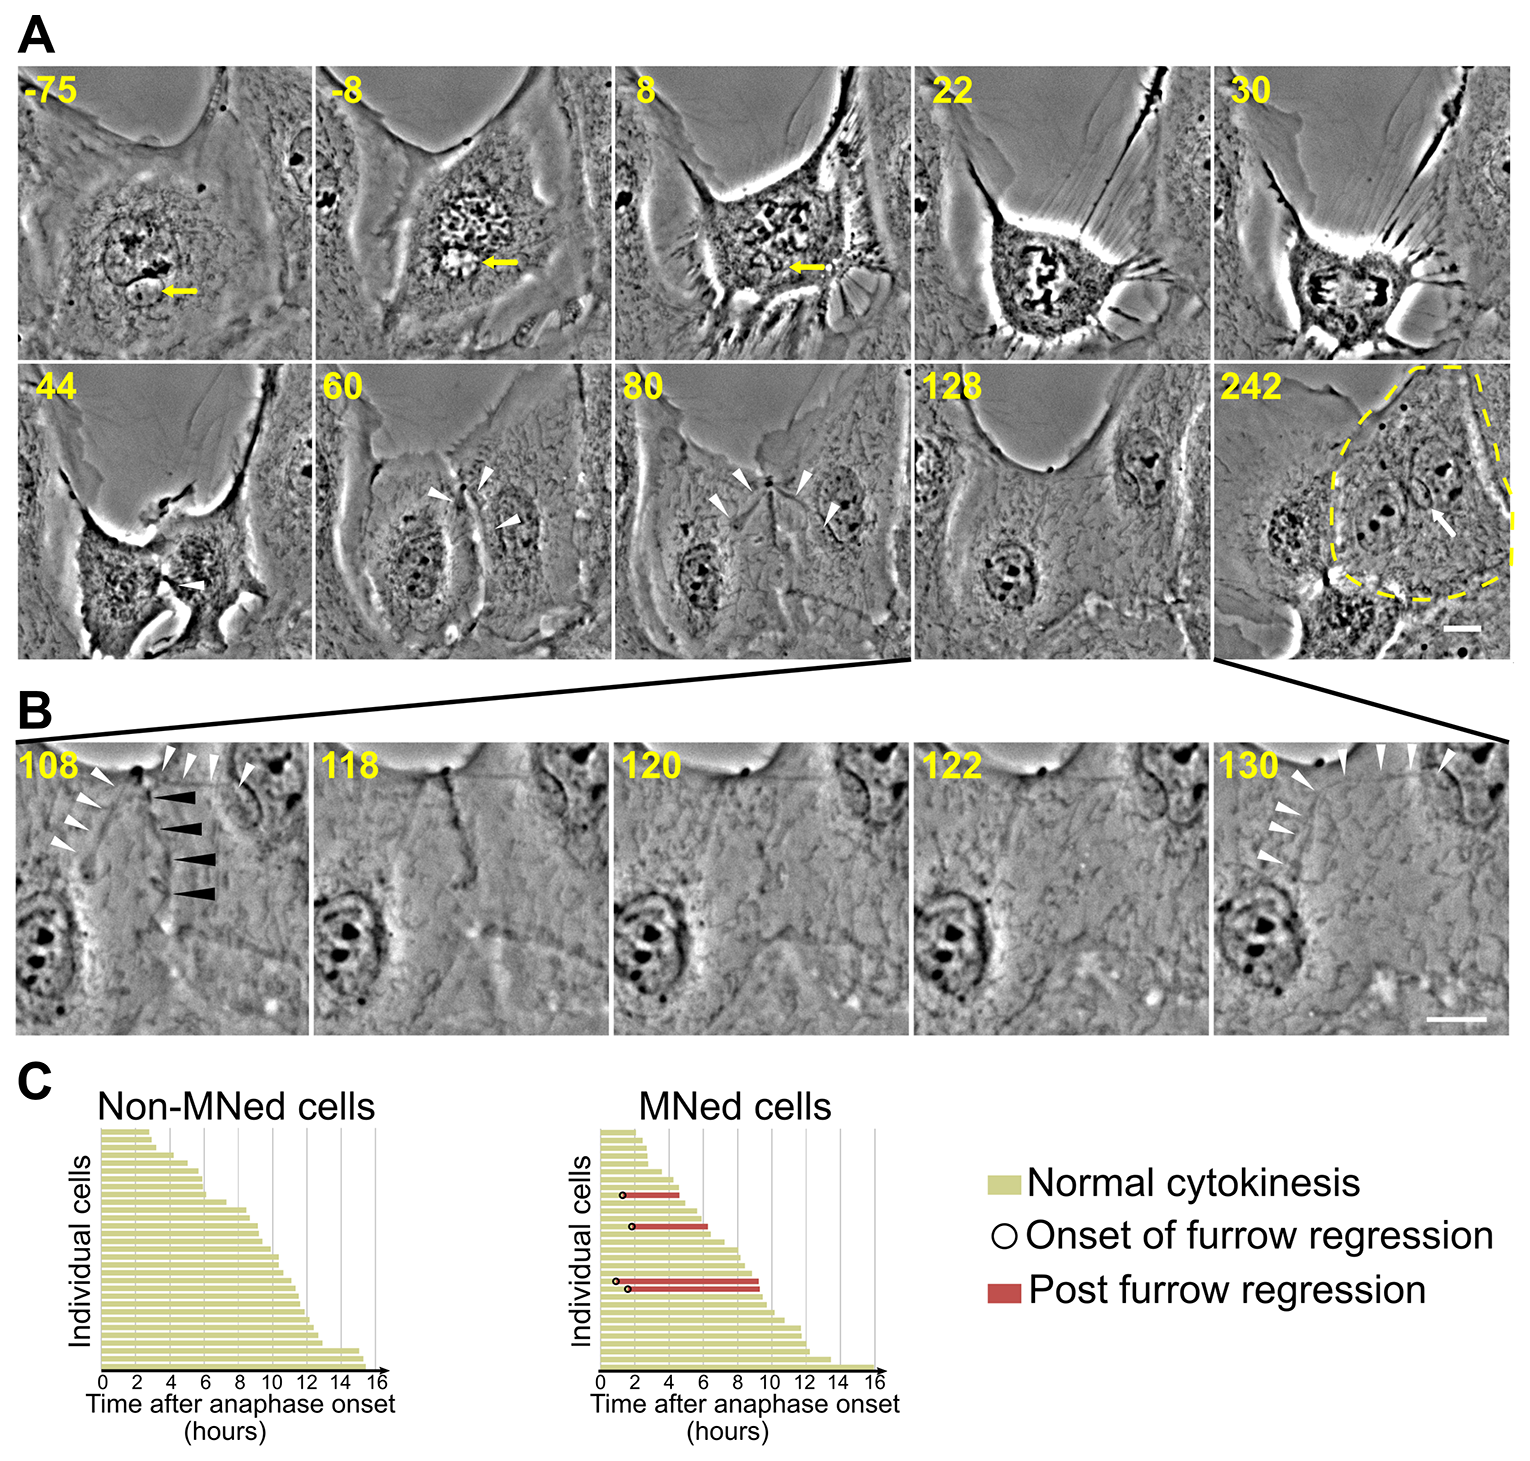 Furrow regression and tetraploidization in MNed cells.